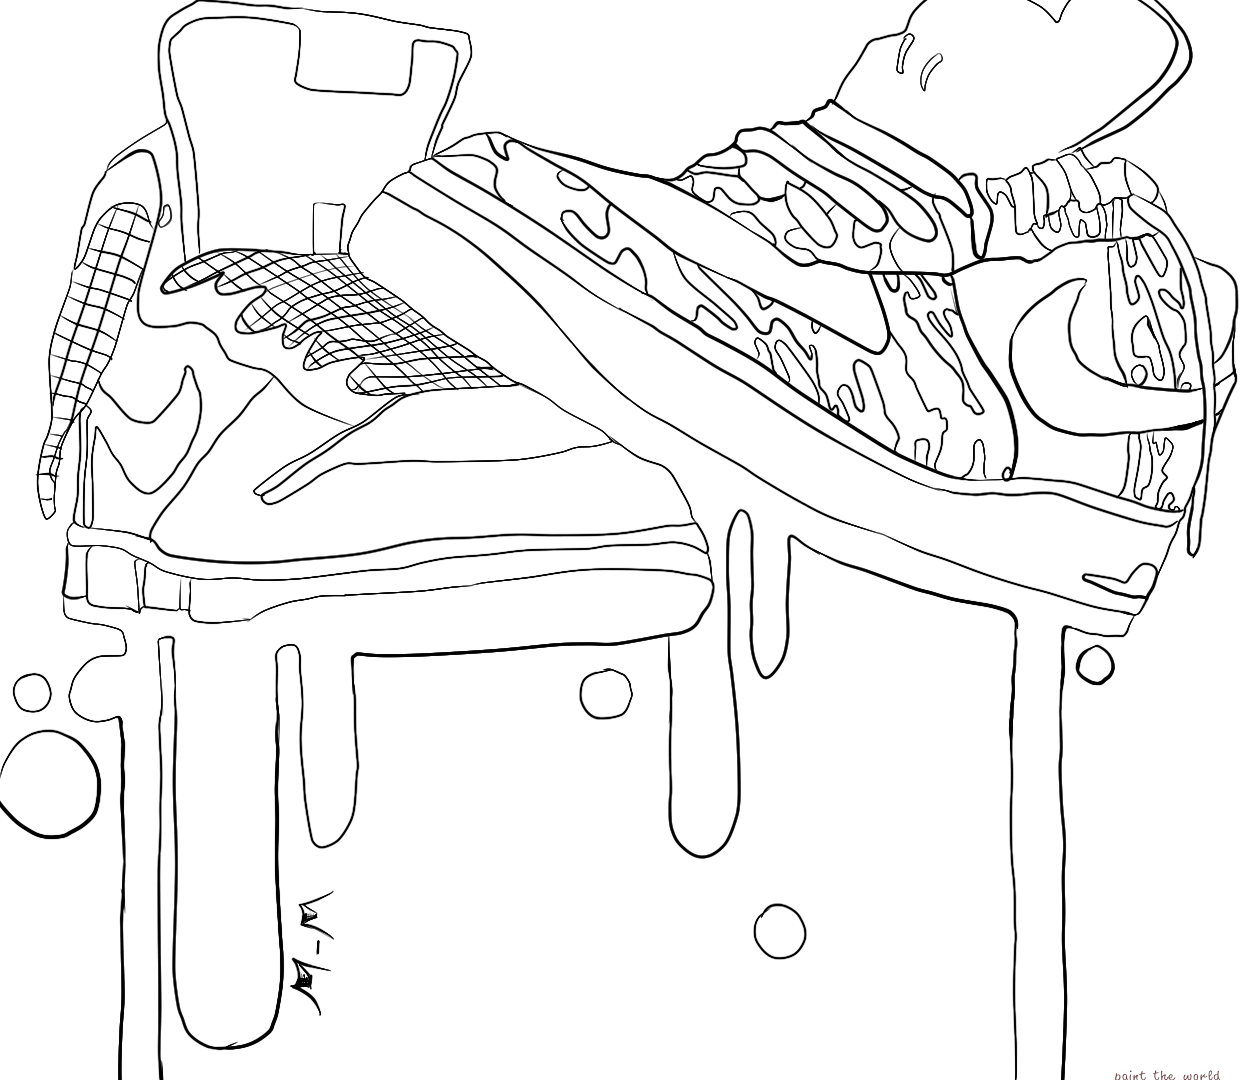 1249x1080 Kd Nikehoes Coloring Pages Air Max Page Apparel Onneakers Michael